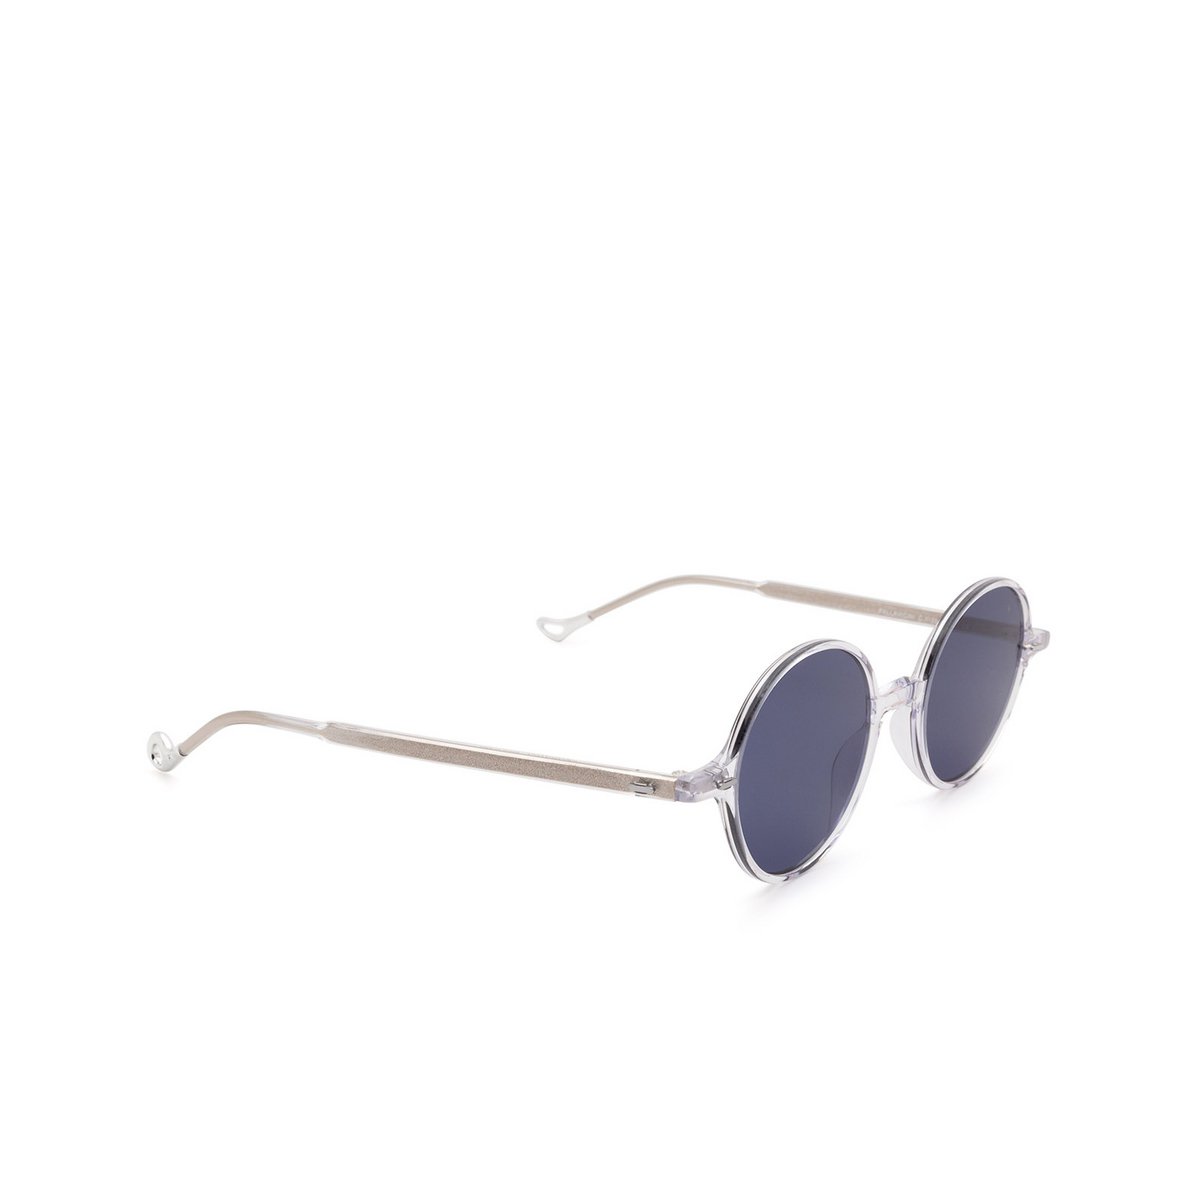 Eyepetizer® Round Sunglasses: Pallavicini color Crystal C.Y-39 - three-quarters view.